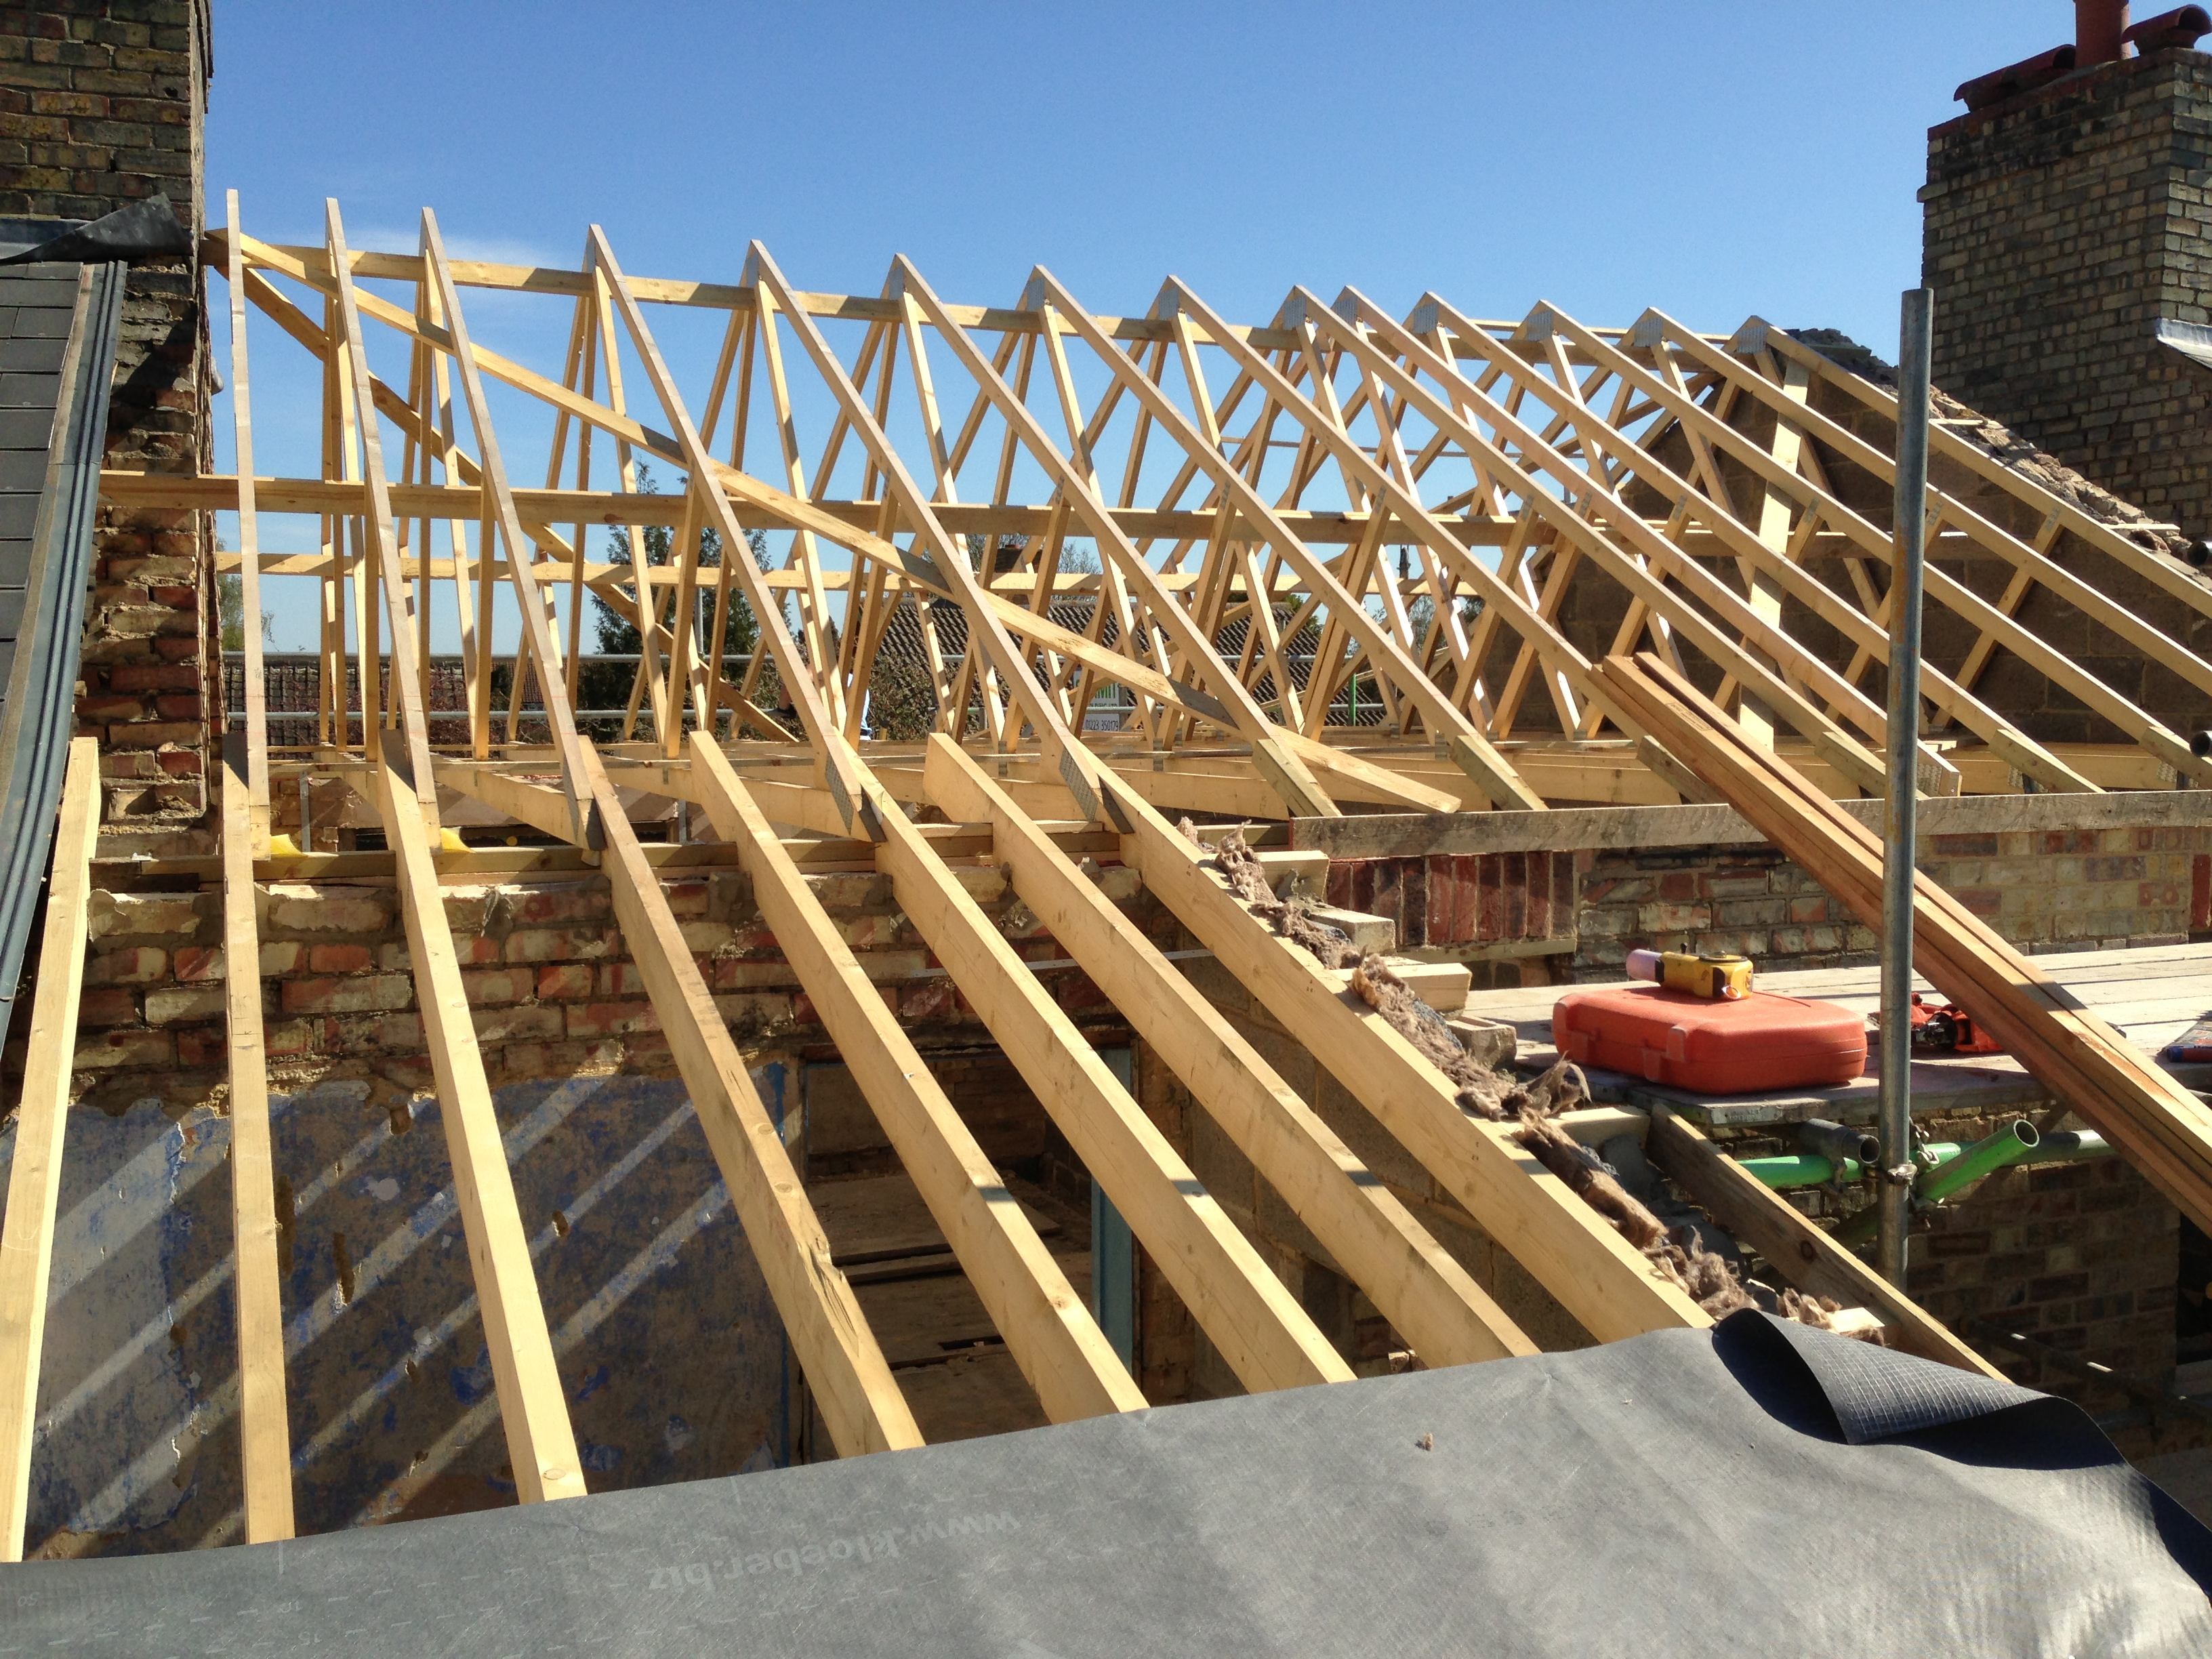 Rafters ready for the roof